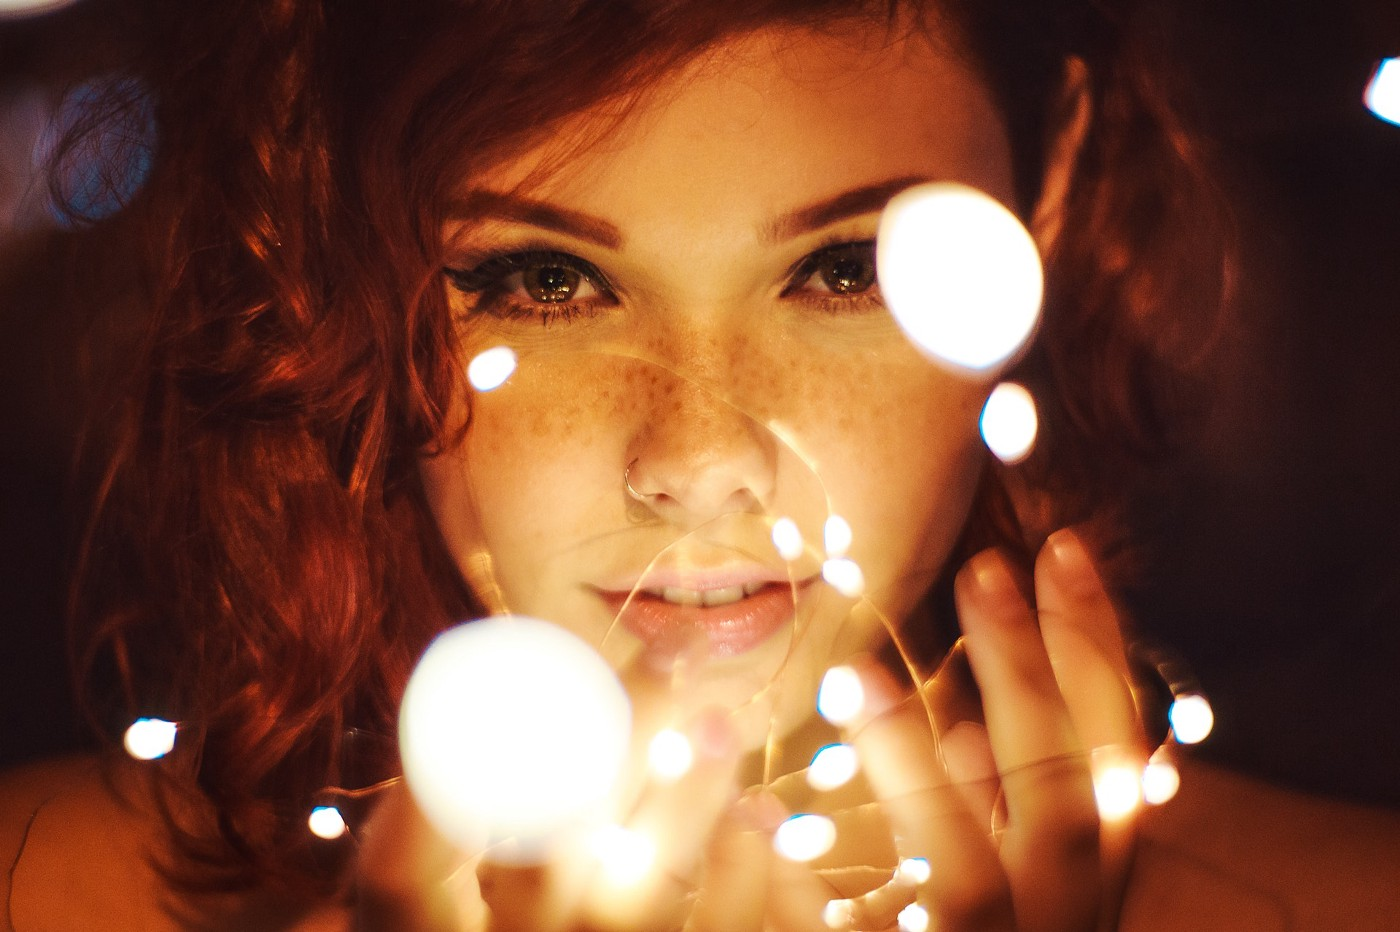 A bewitching young woman with red hair and freckles.